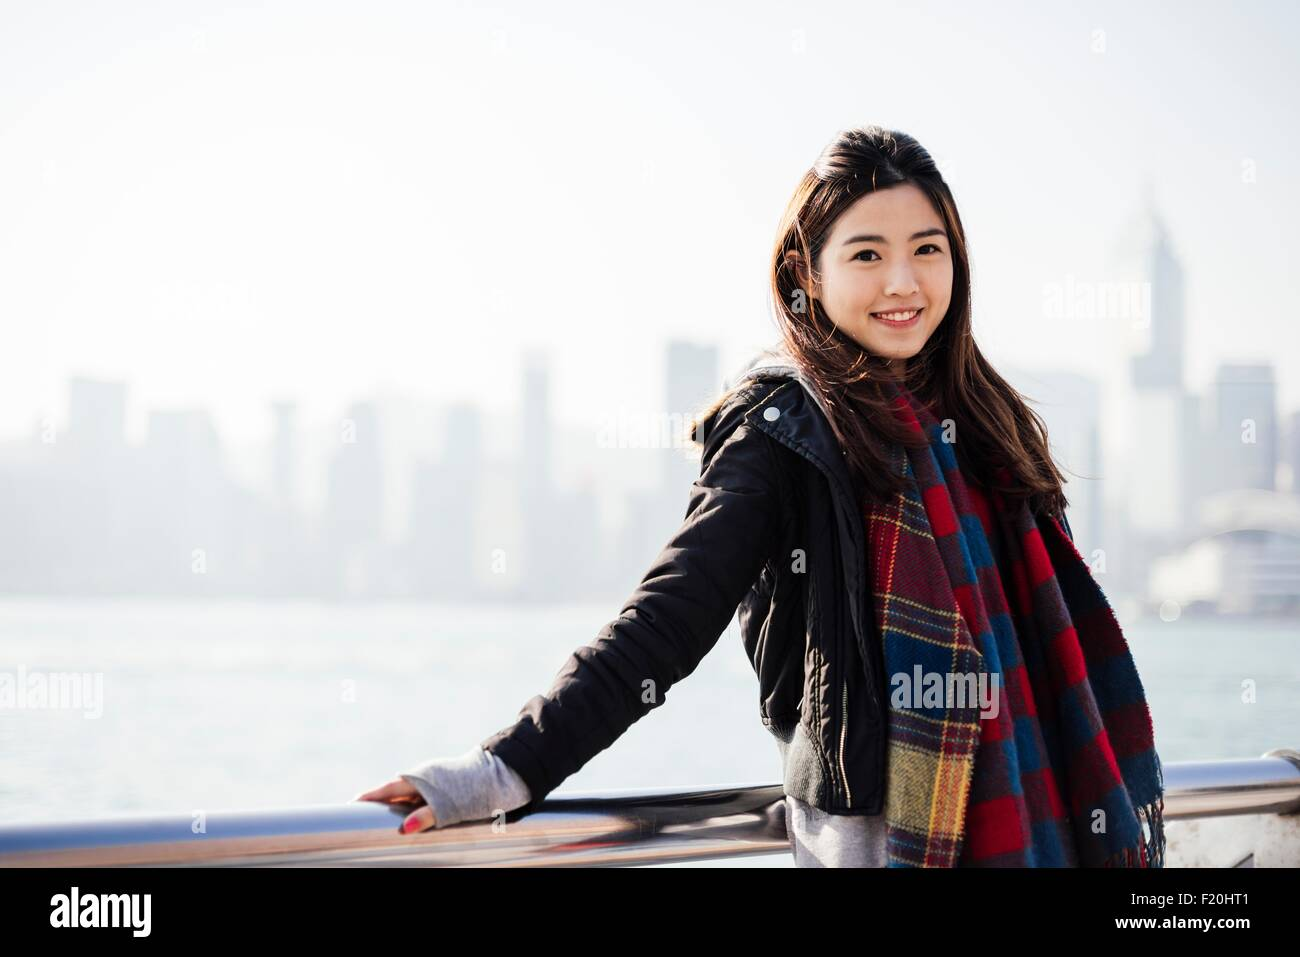 ce81be197 Portrait of young woman wearing checked scarf and leather jacket, looking  at camera - Stock